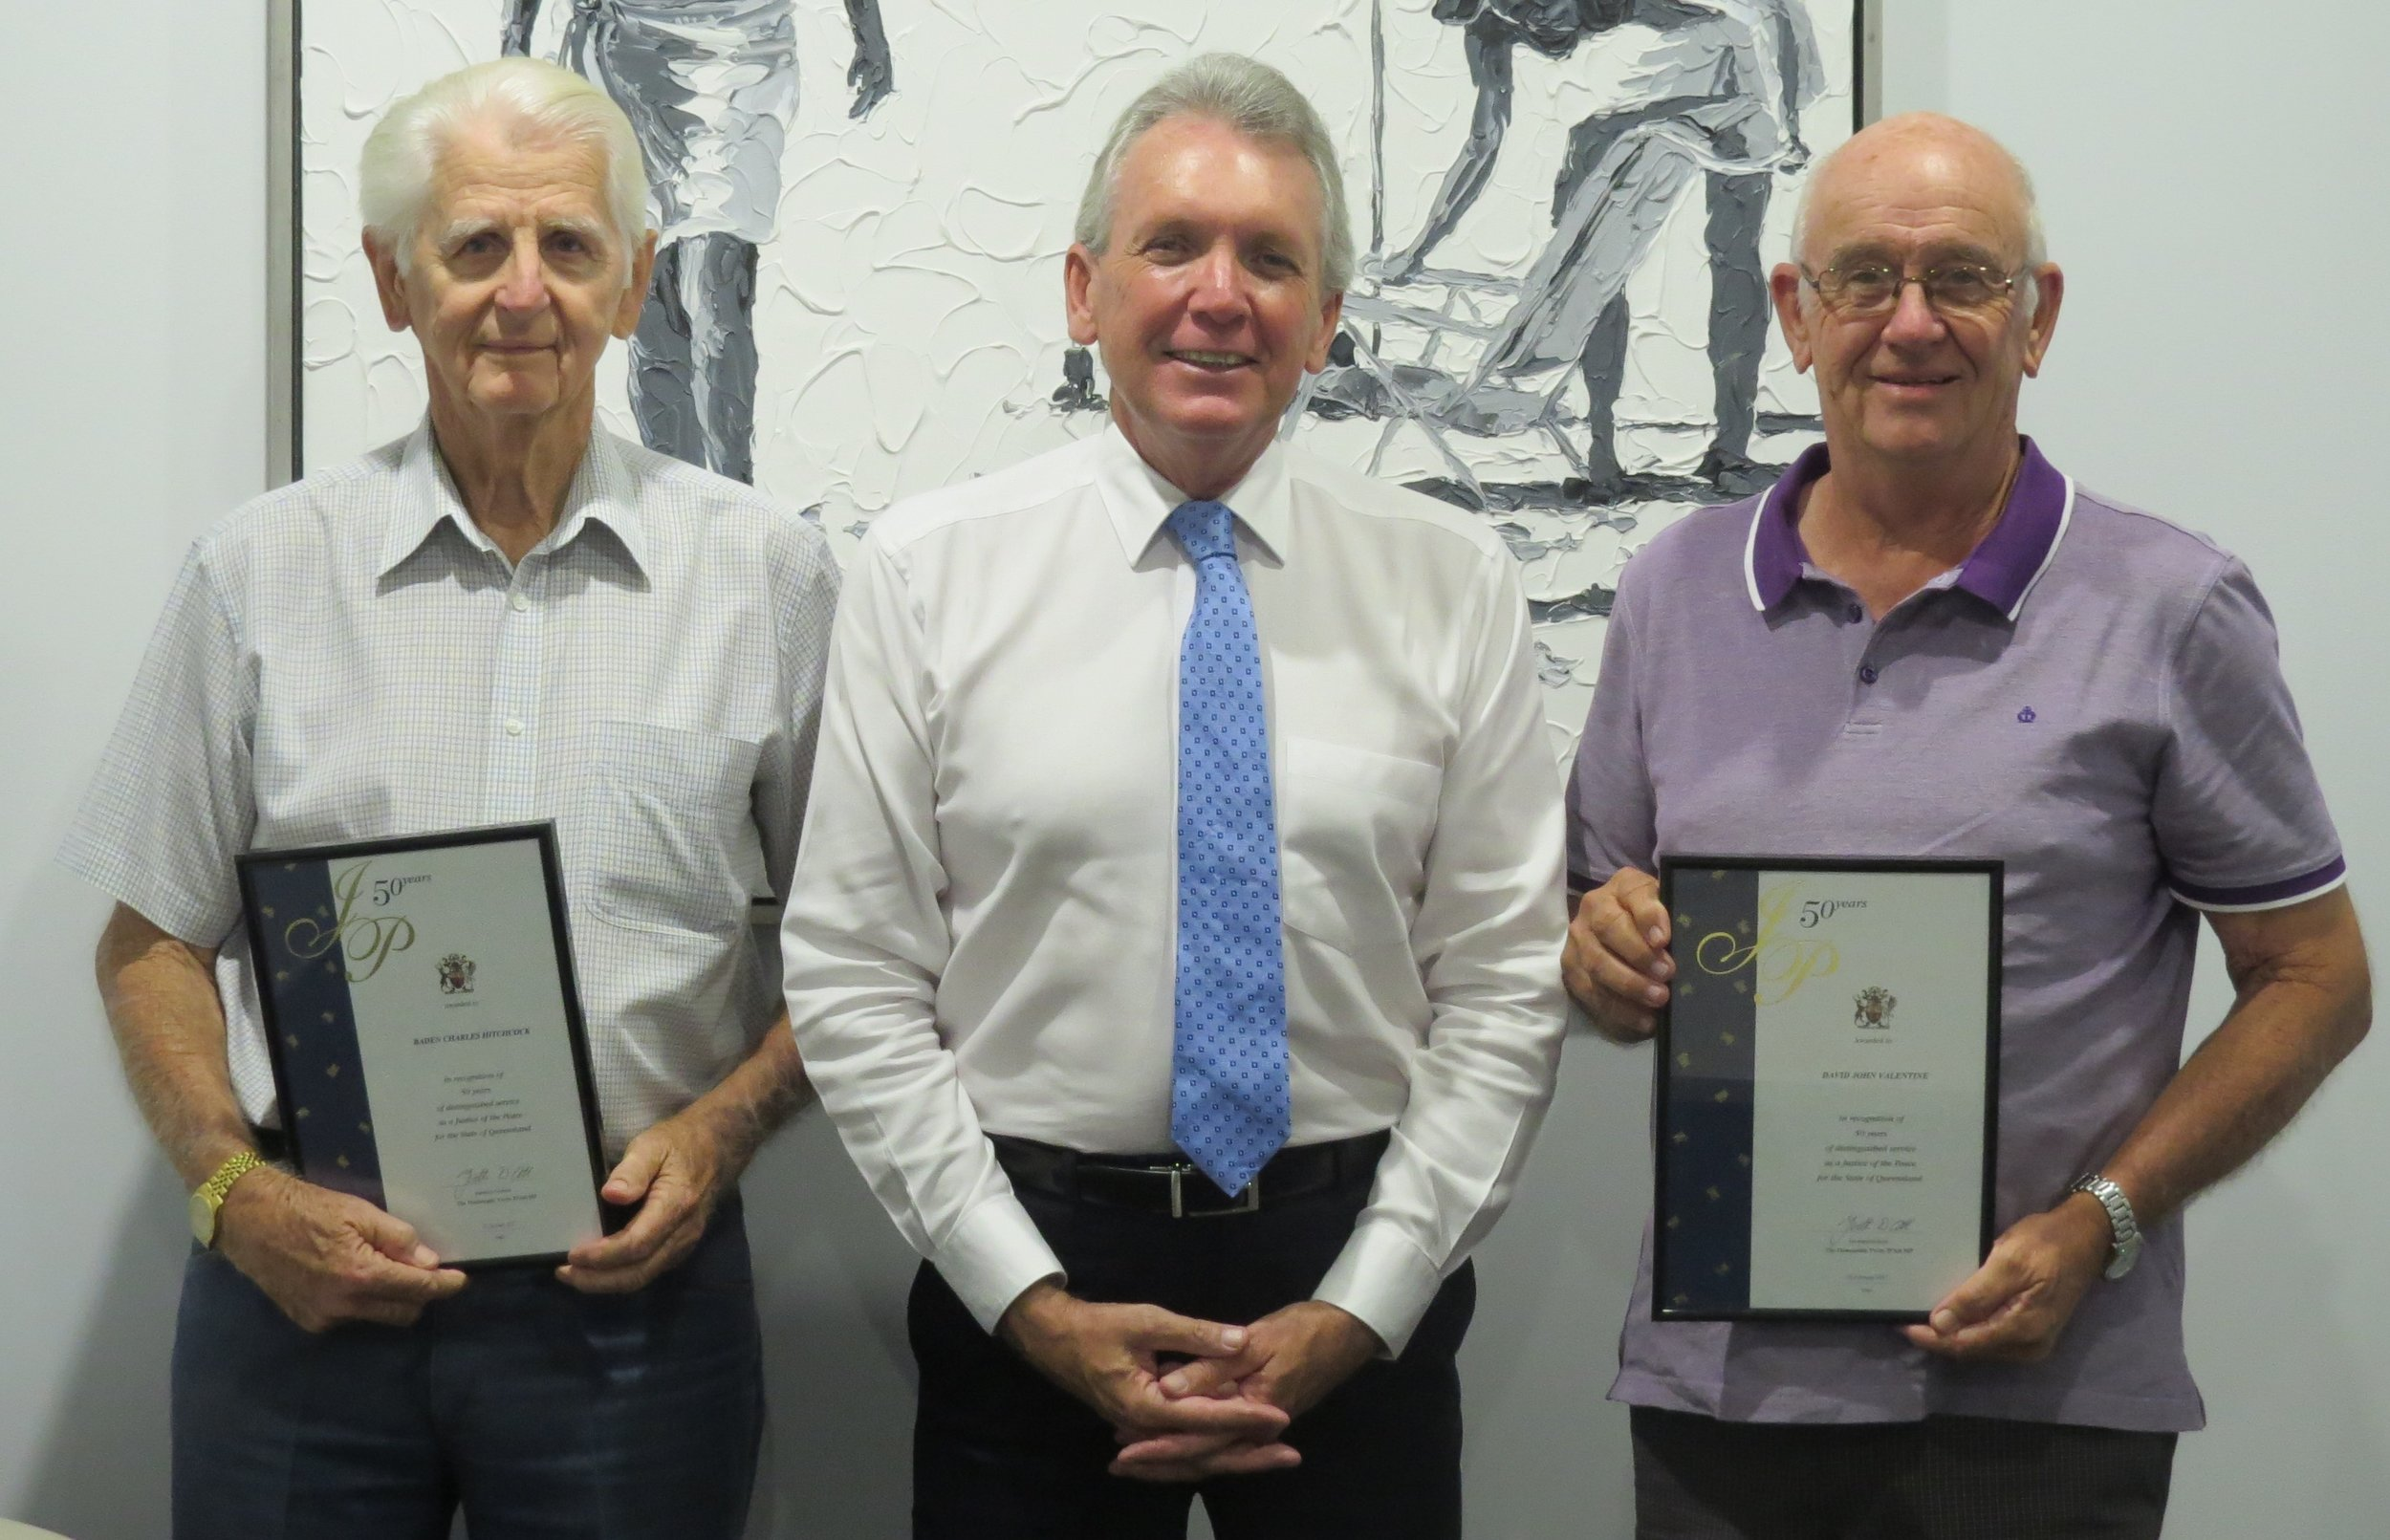 Baden Hitchcock and David Valentine are presented with their 50-year JP Long Service Awards from Mark McArdle MP